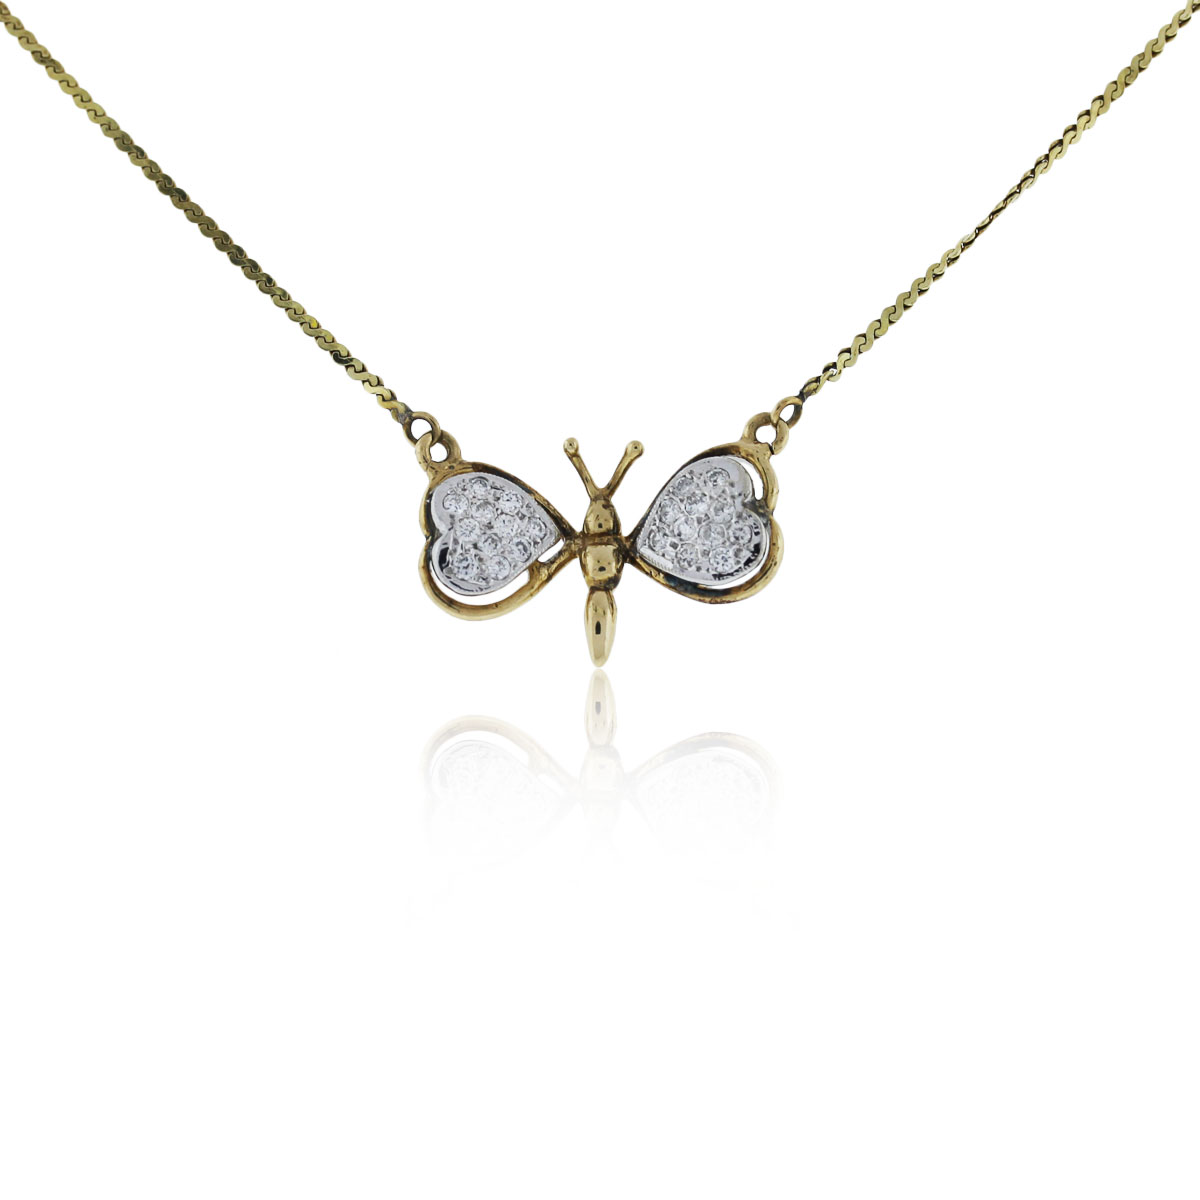 14k yellow gold and butterfly pendant necklace